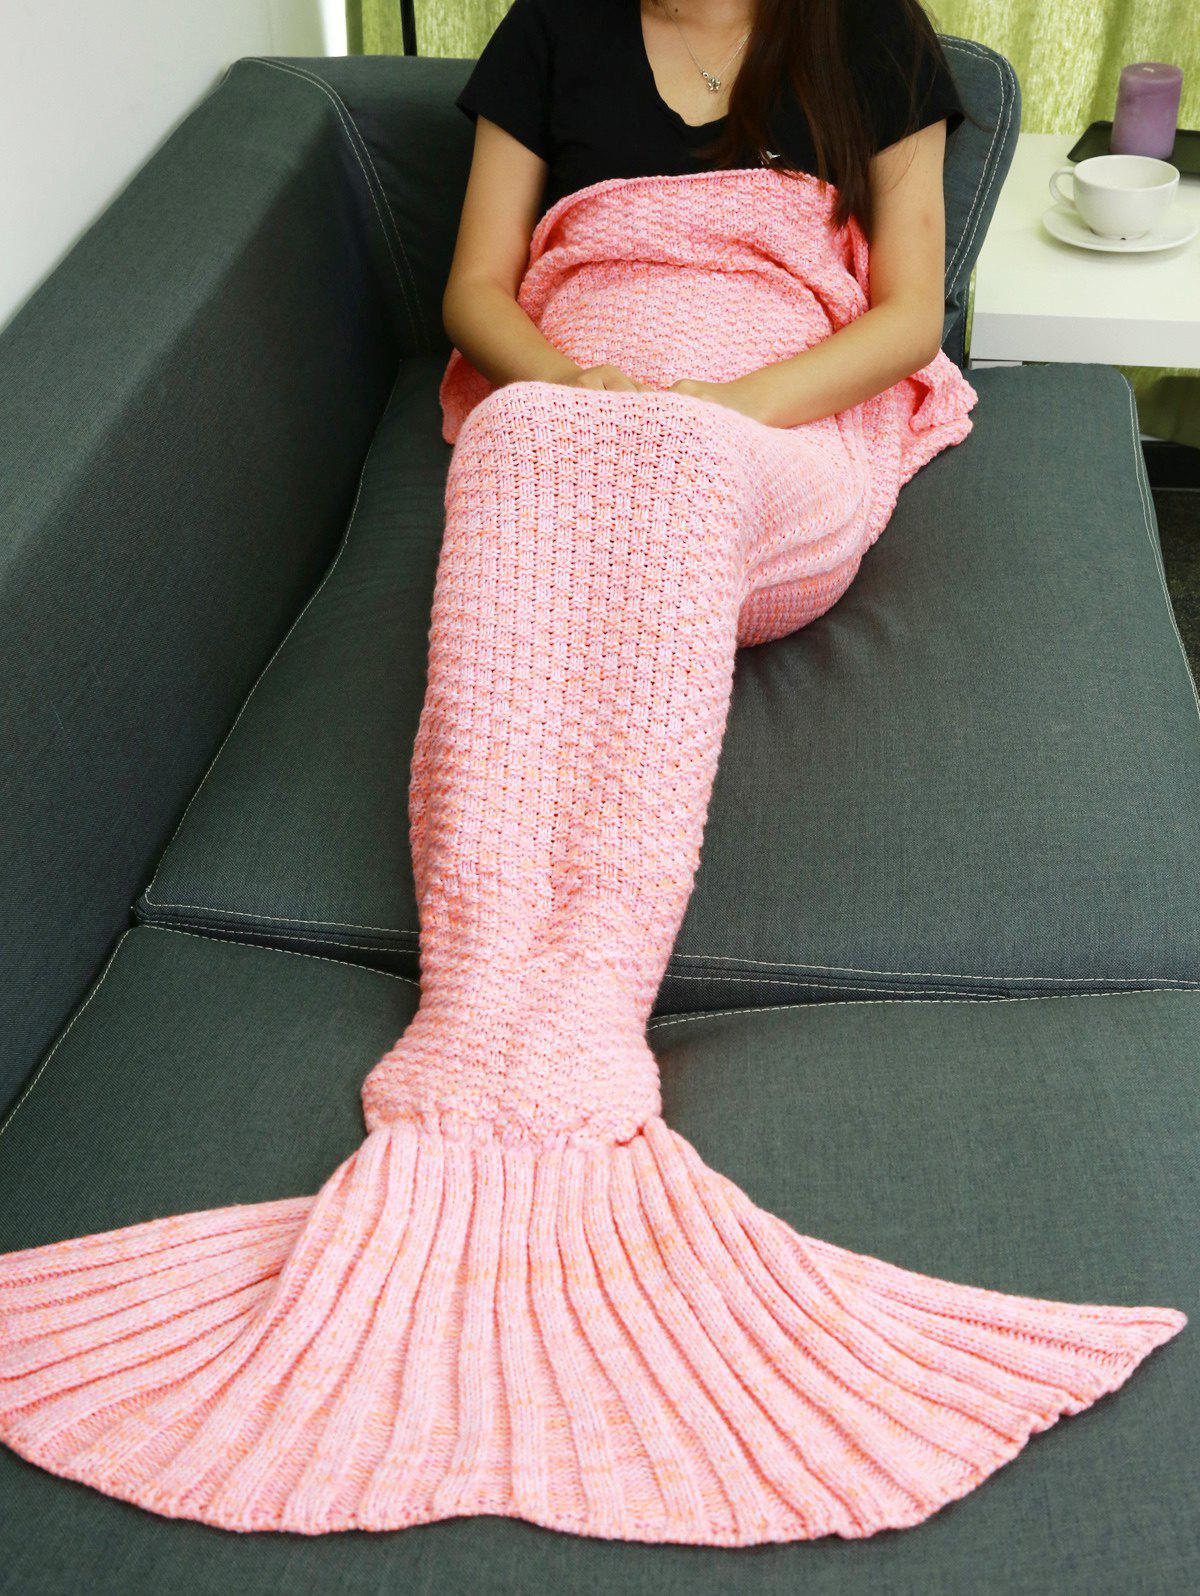 Warmth Braided Decor Knitting Mermaid Tail Style Soft Sofa Blanket - PINK